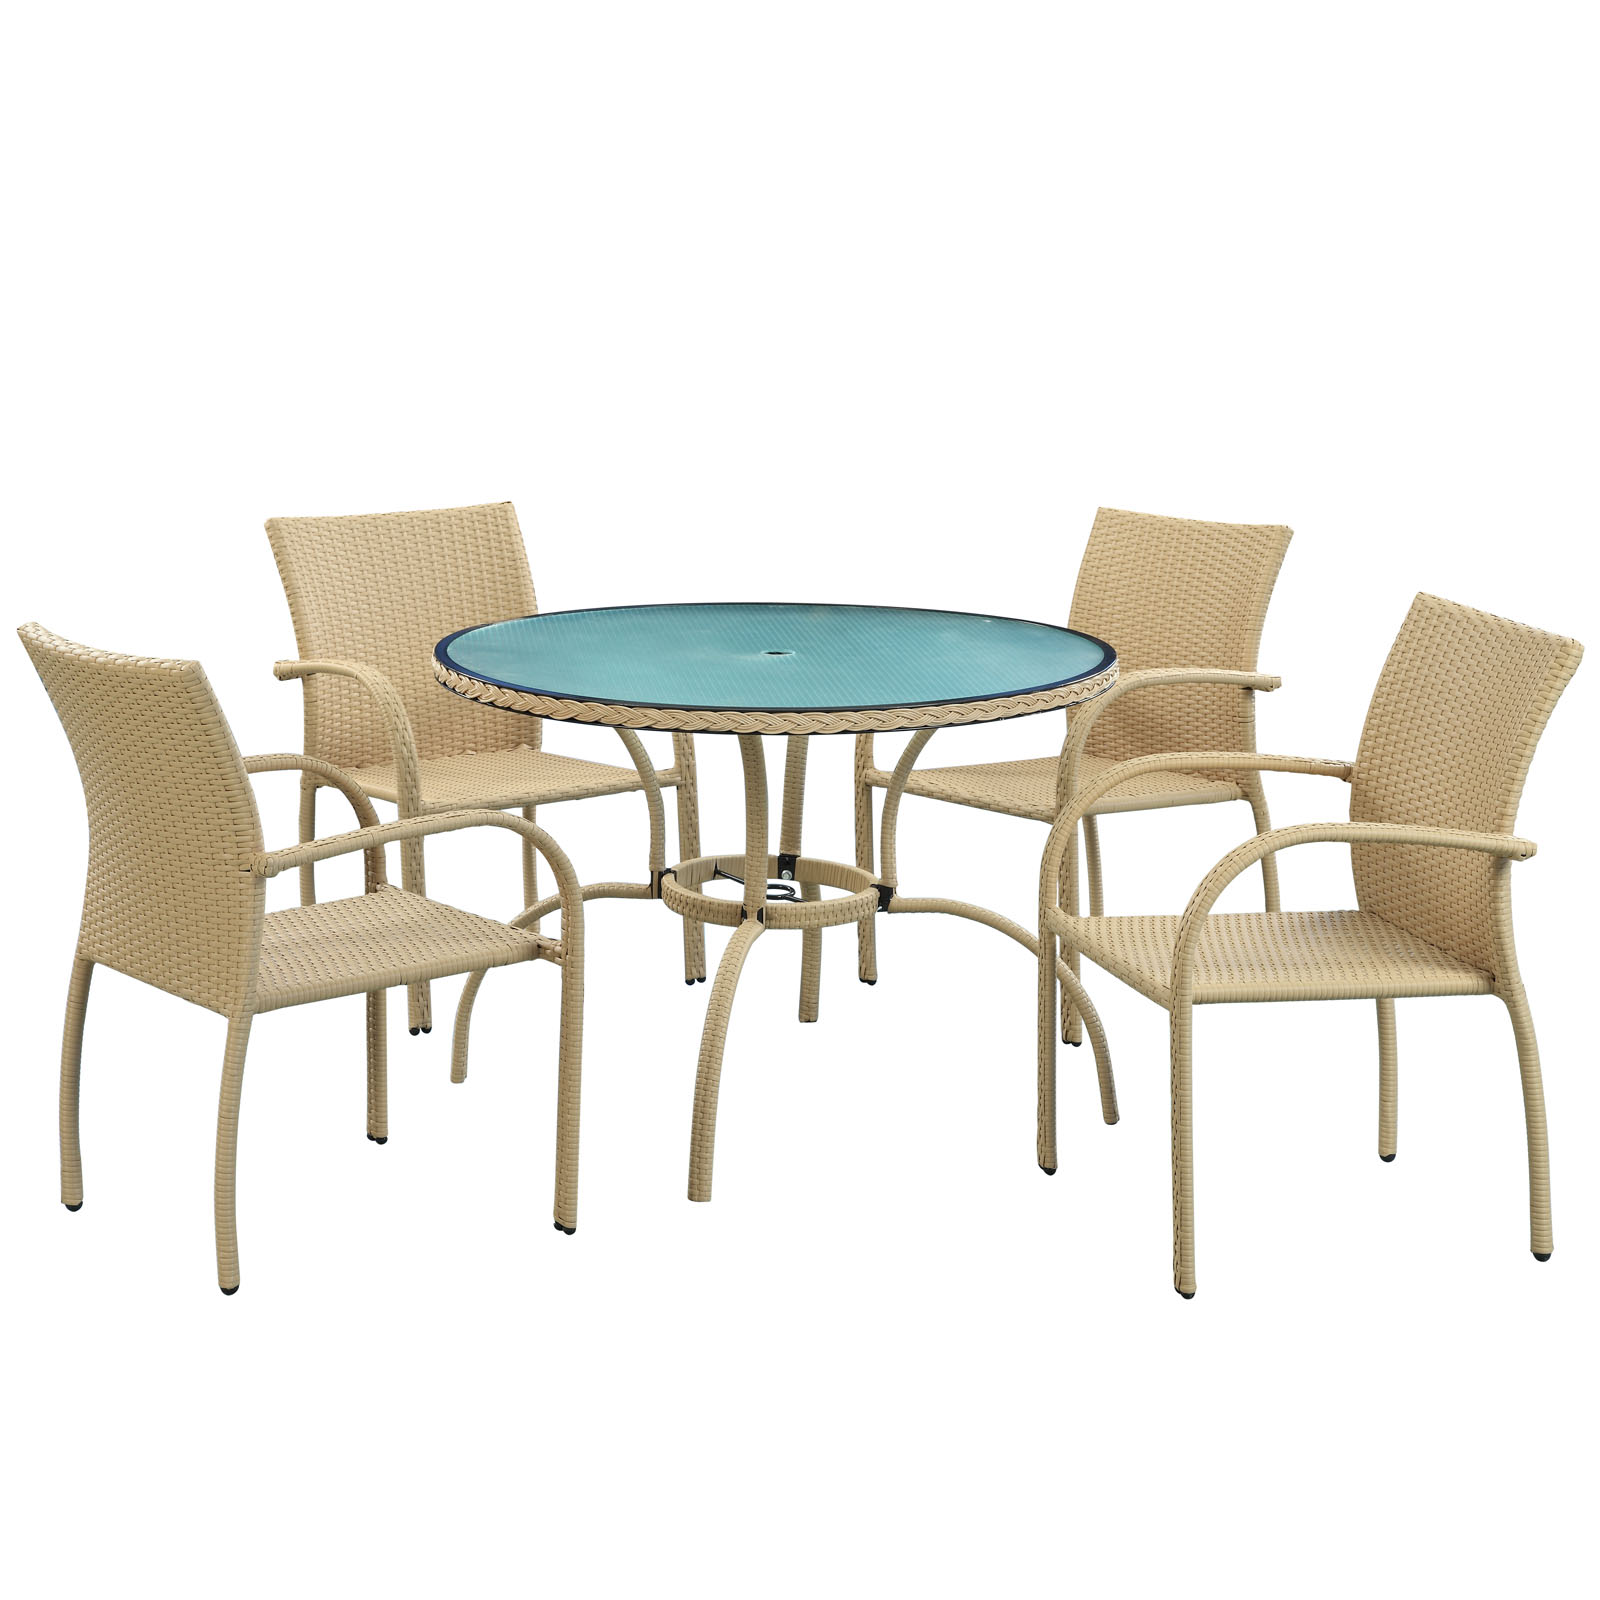 Circulo All-Weather Wicker Patio Dining Set